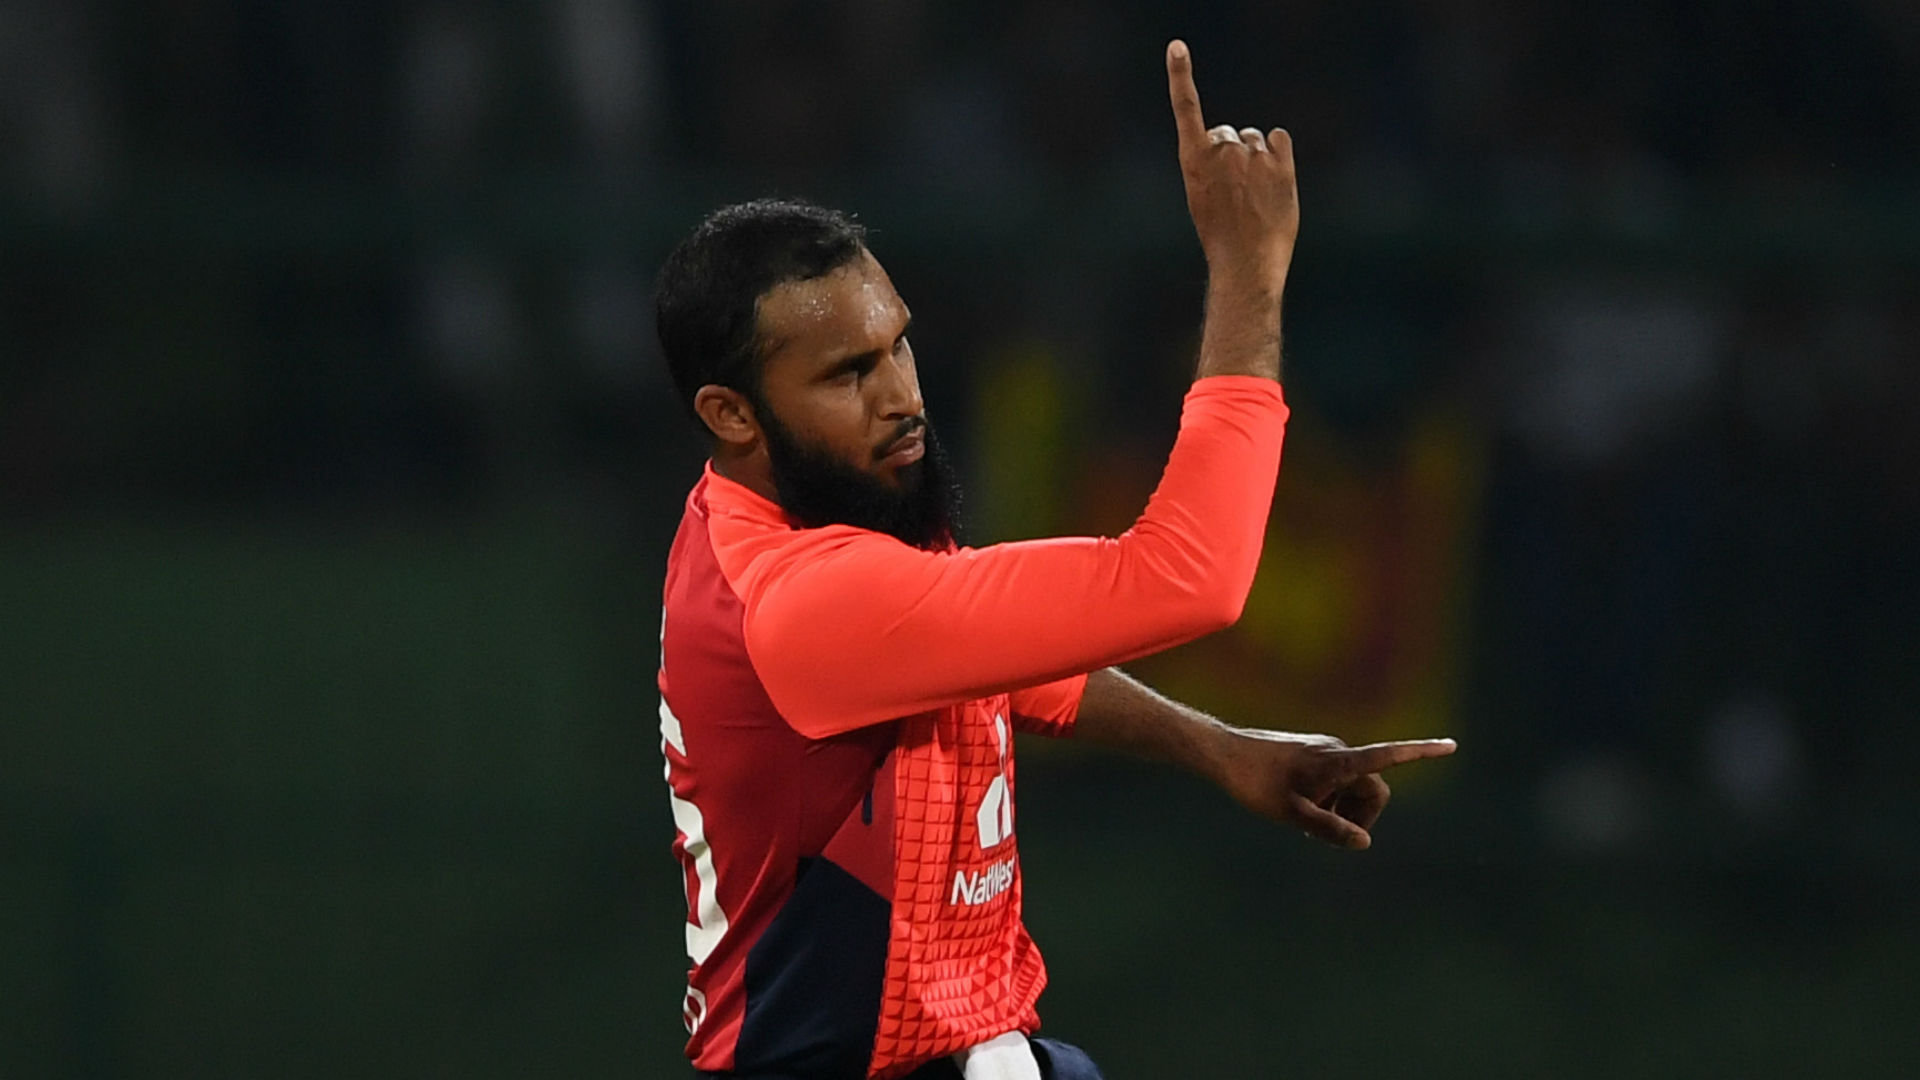 In a contest reduced to 21 overs-a-side, Adil Rashid took 4-36 and Eoin Morgan made 58 not out as England beat Sri Lanka by seven wickets.